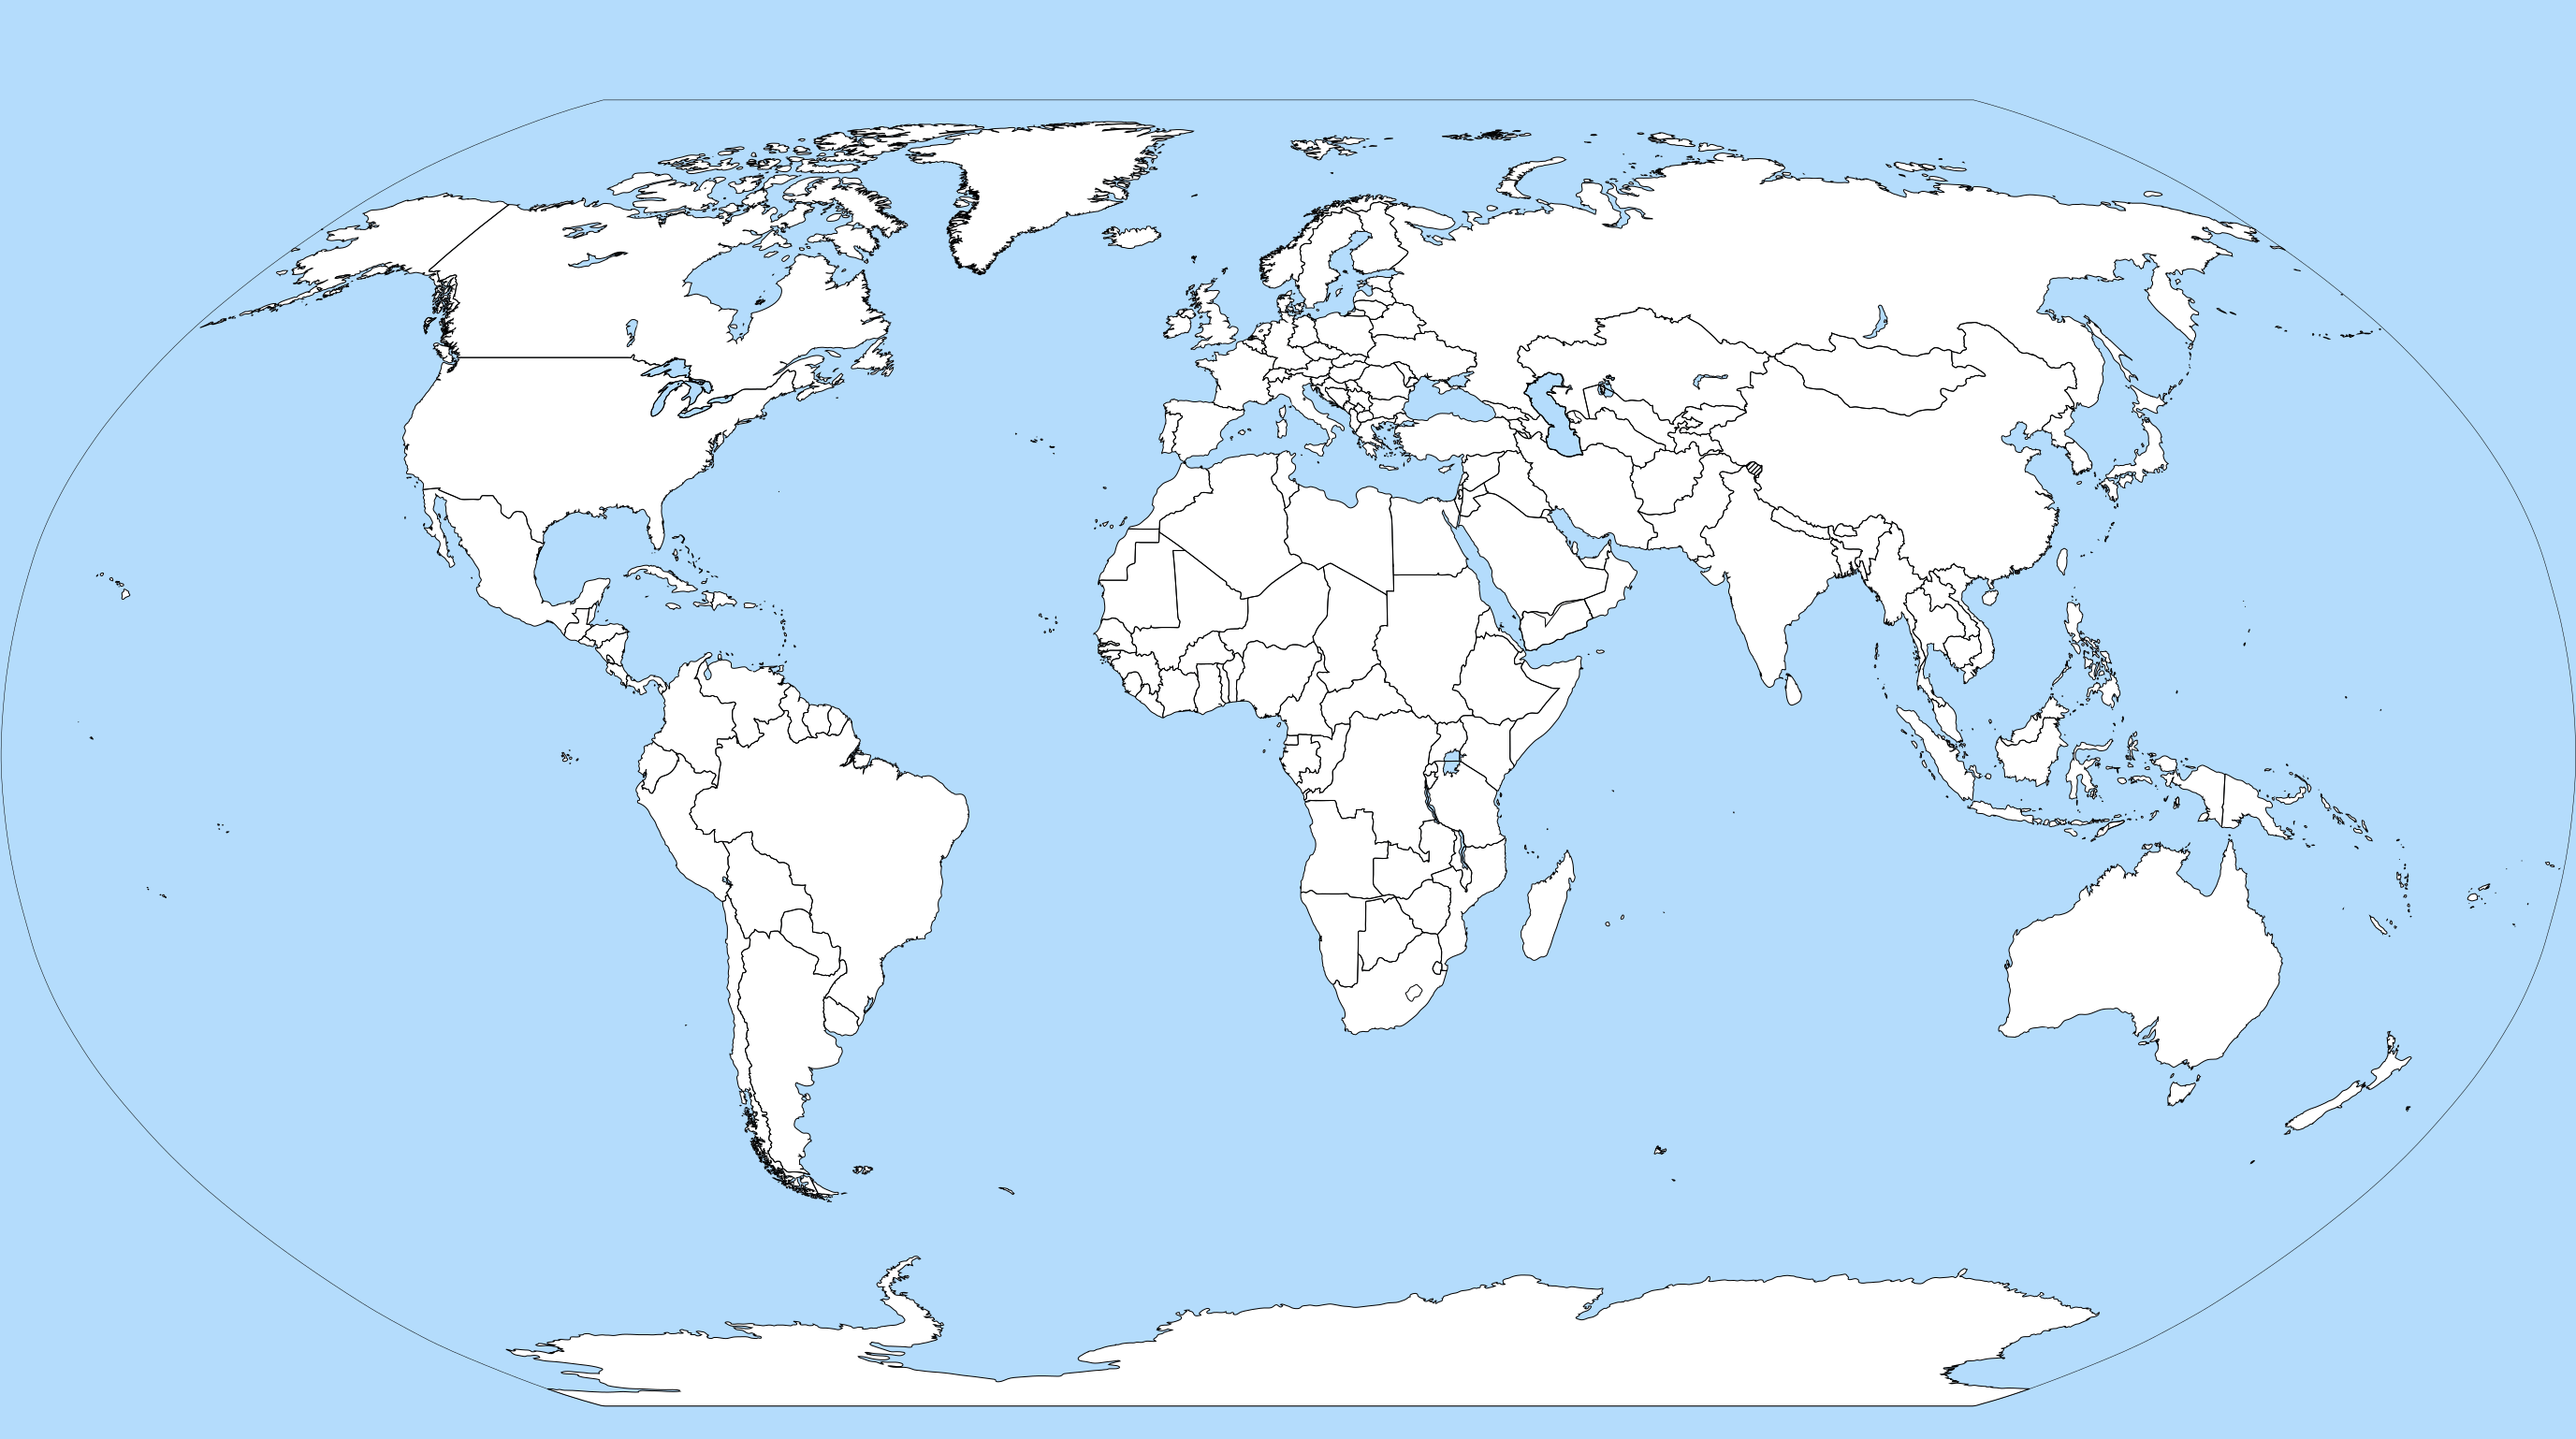 World Map Without Names